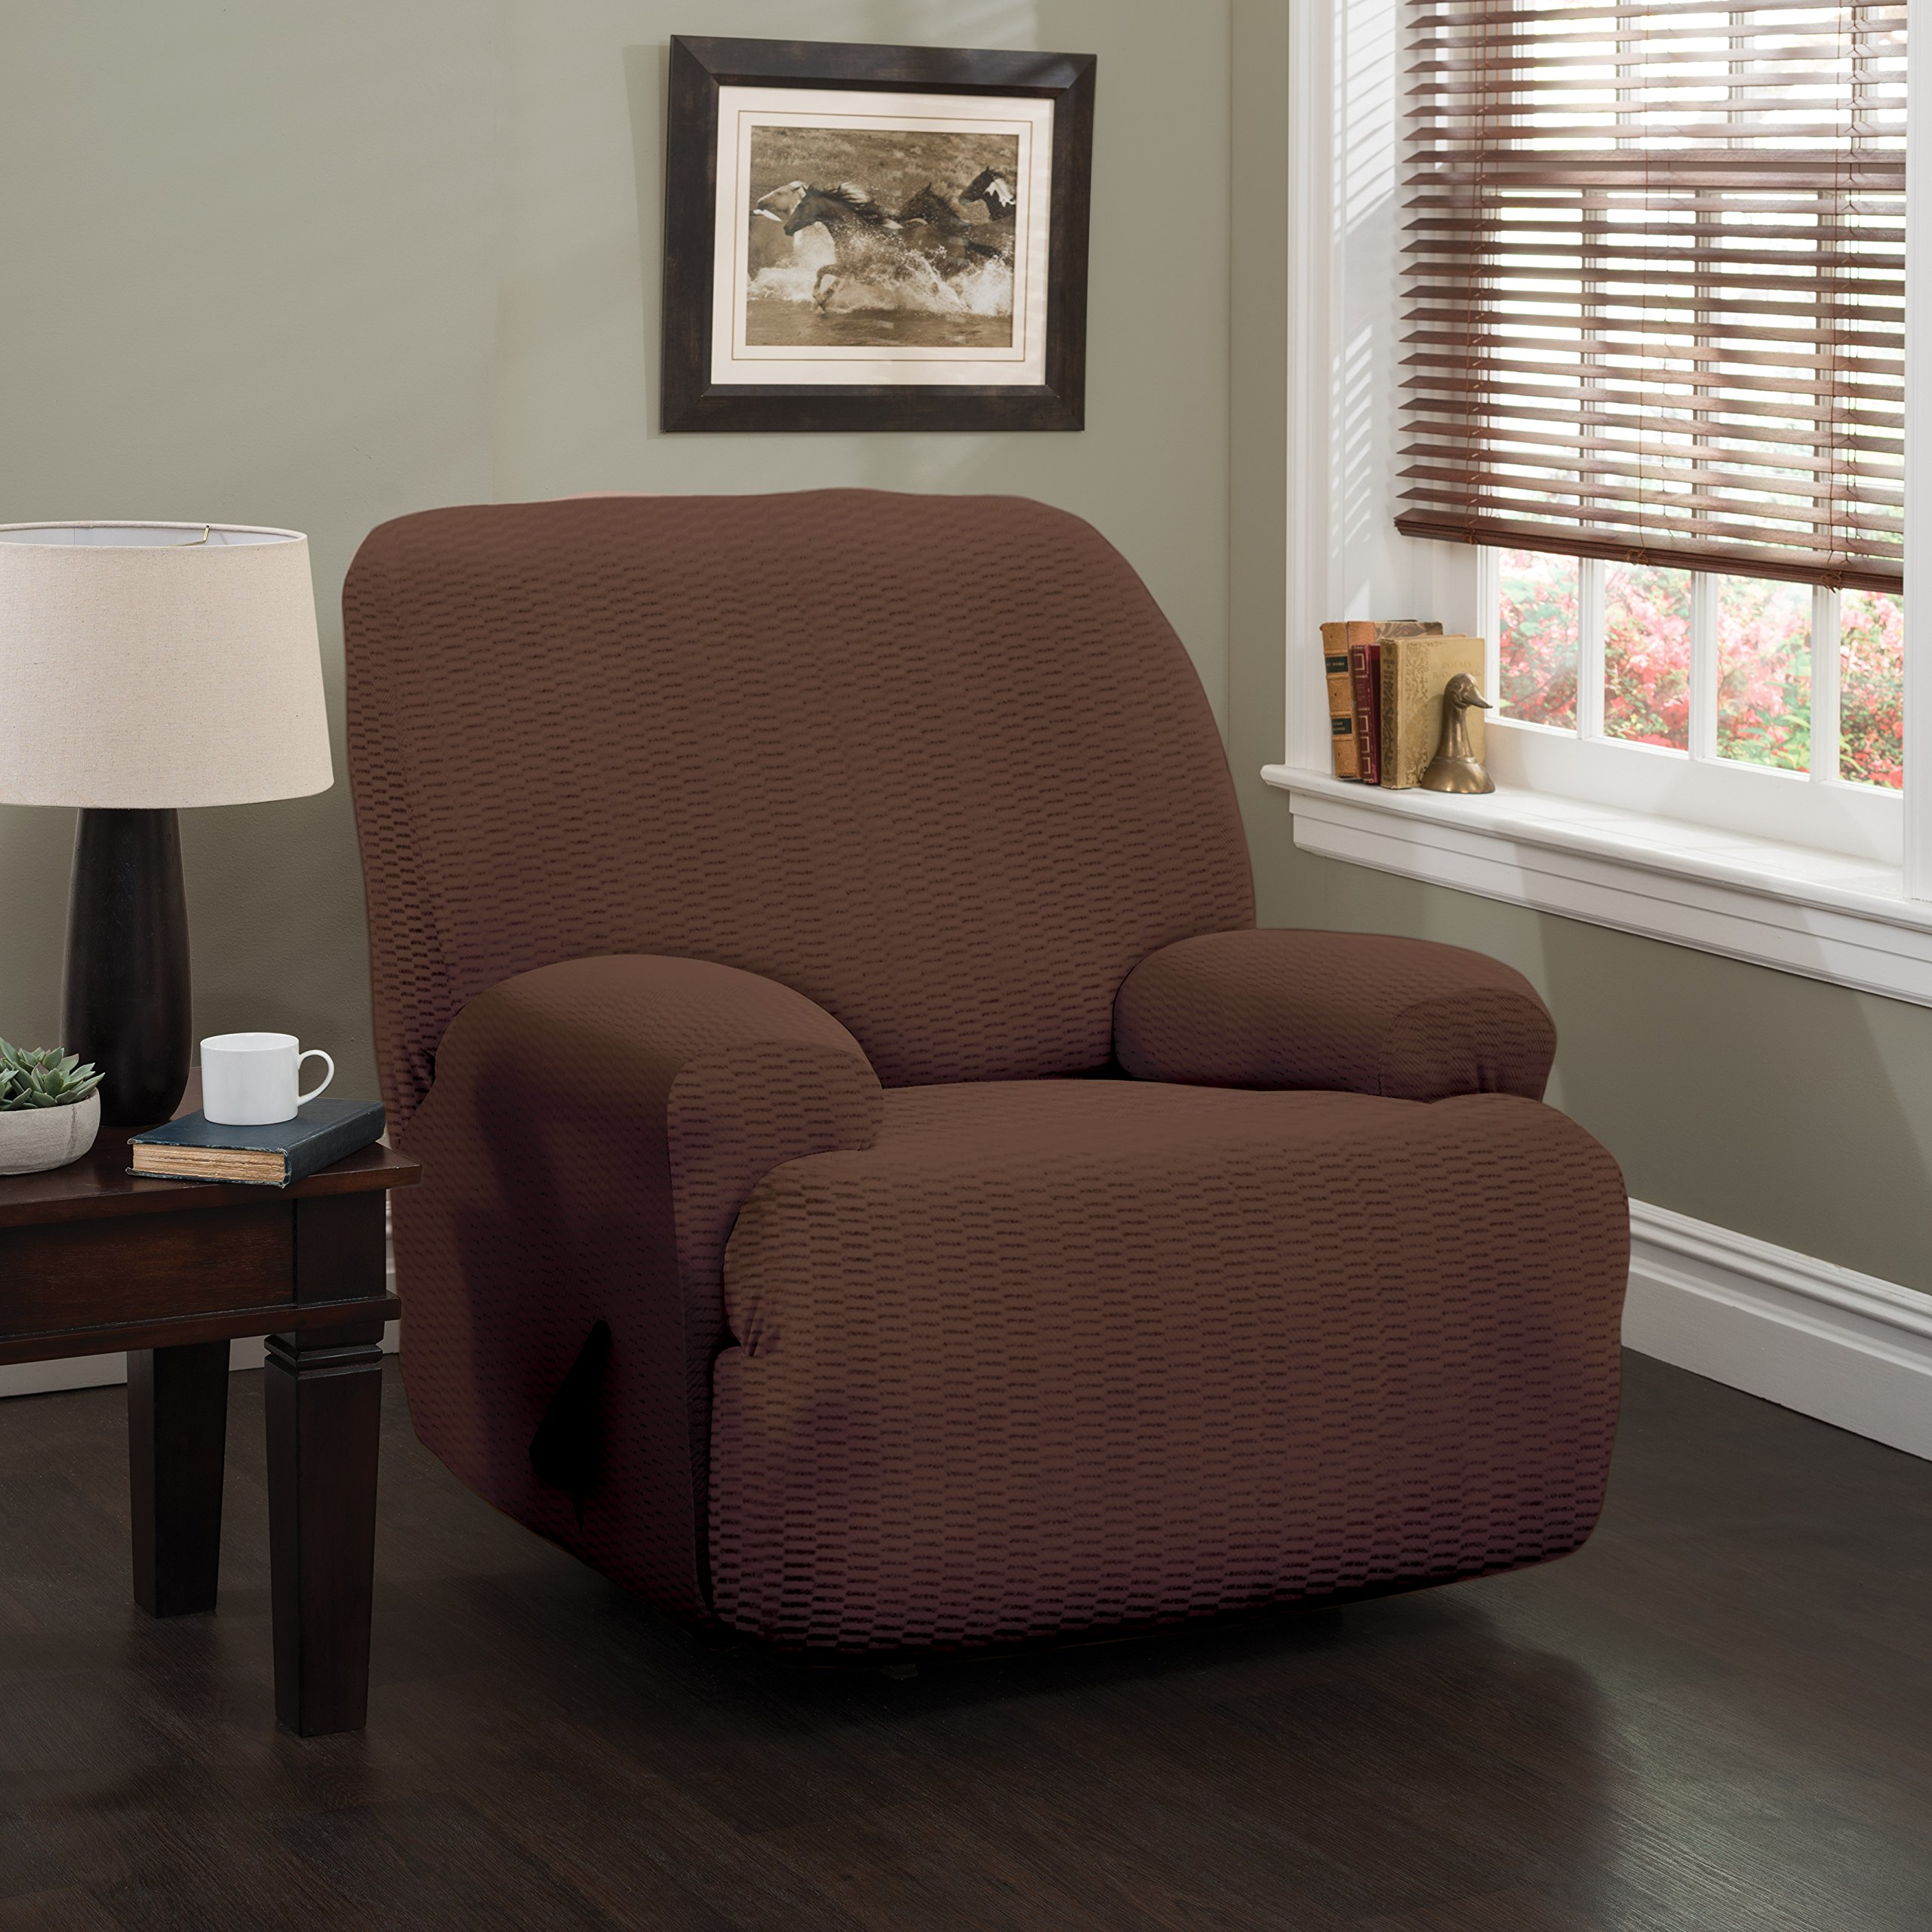 Stretch Sensations 9146JRECA Raise The Bar Jumbo Recliner Slipcover, Brown by Stretch Sensations